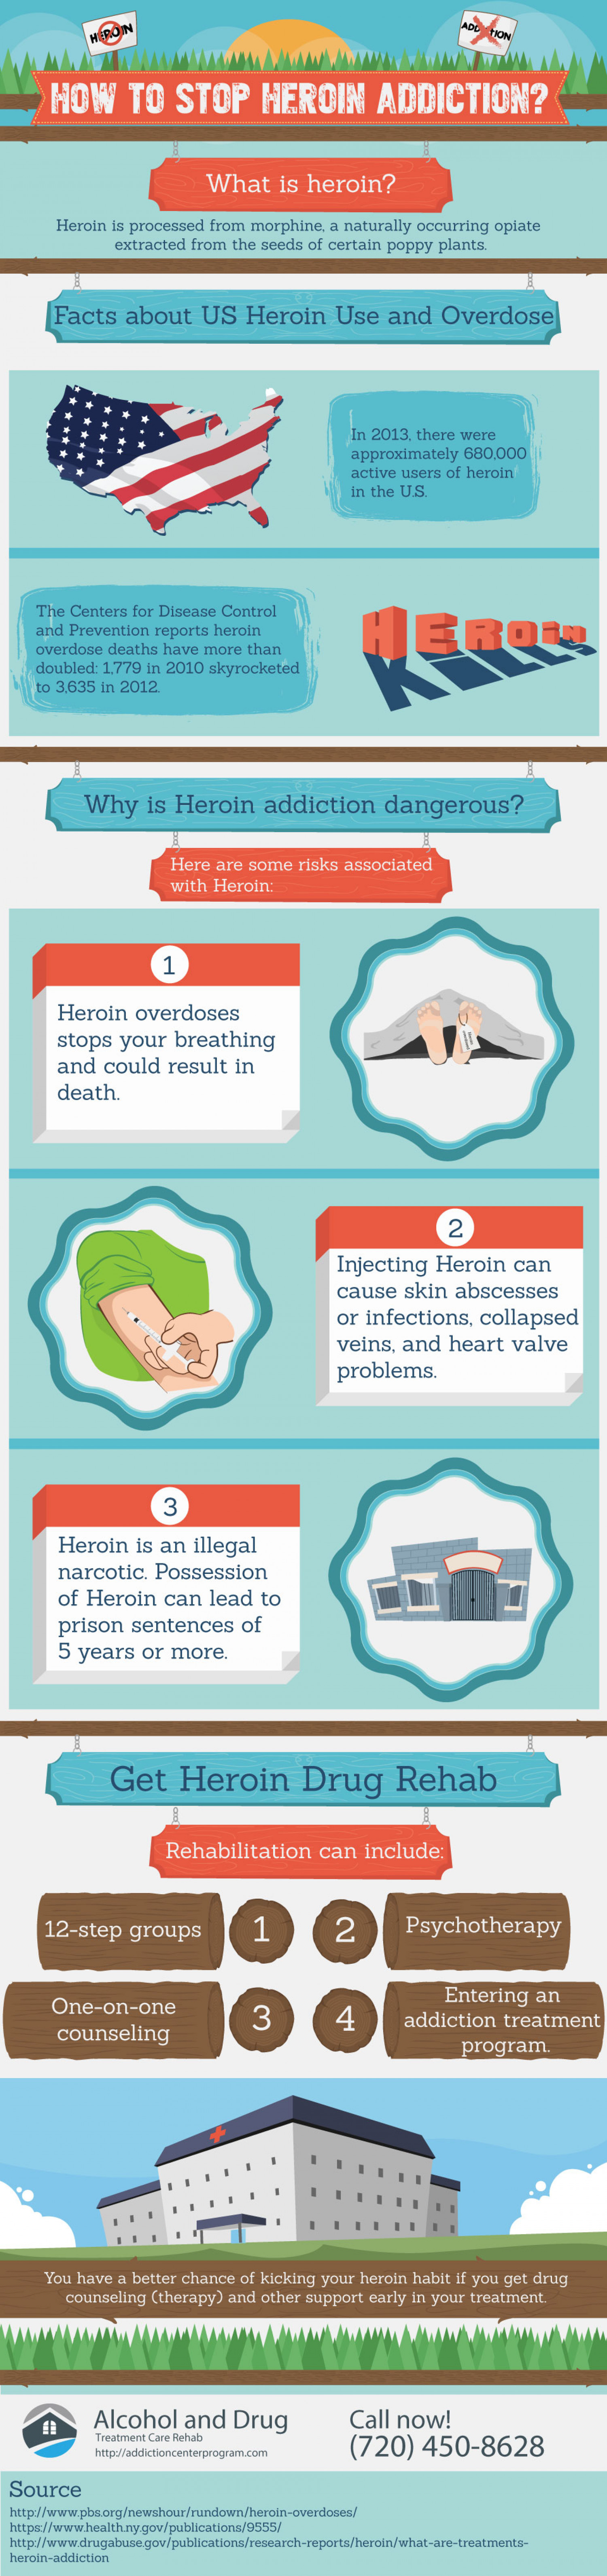 How to Stop Heroin Addiction? | Alcohol and Drug Treatment Care Rehab Infographic